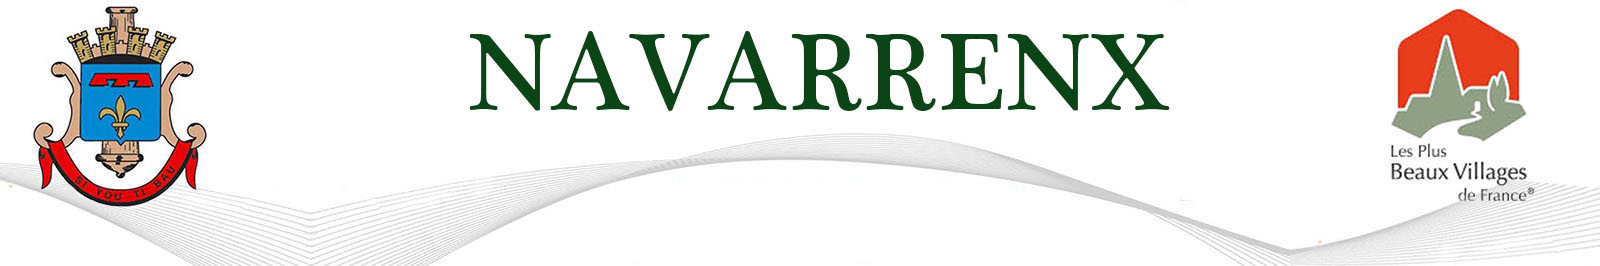 Logo Navarrenx